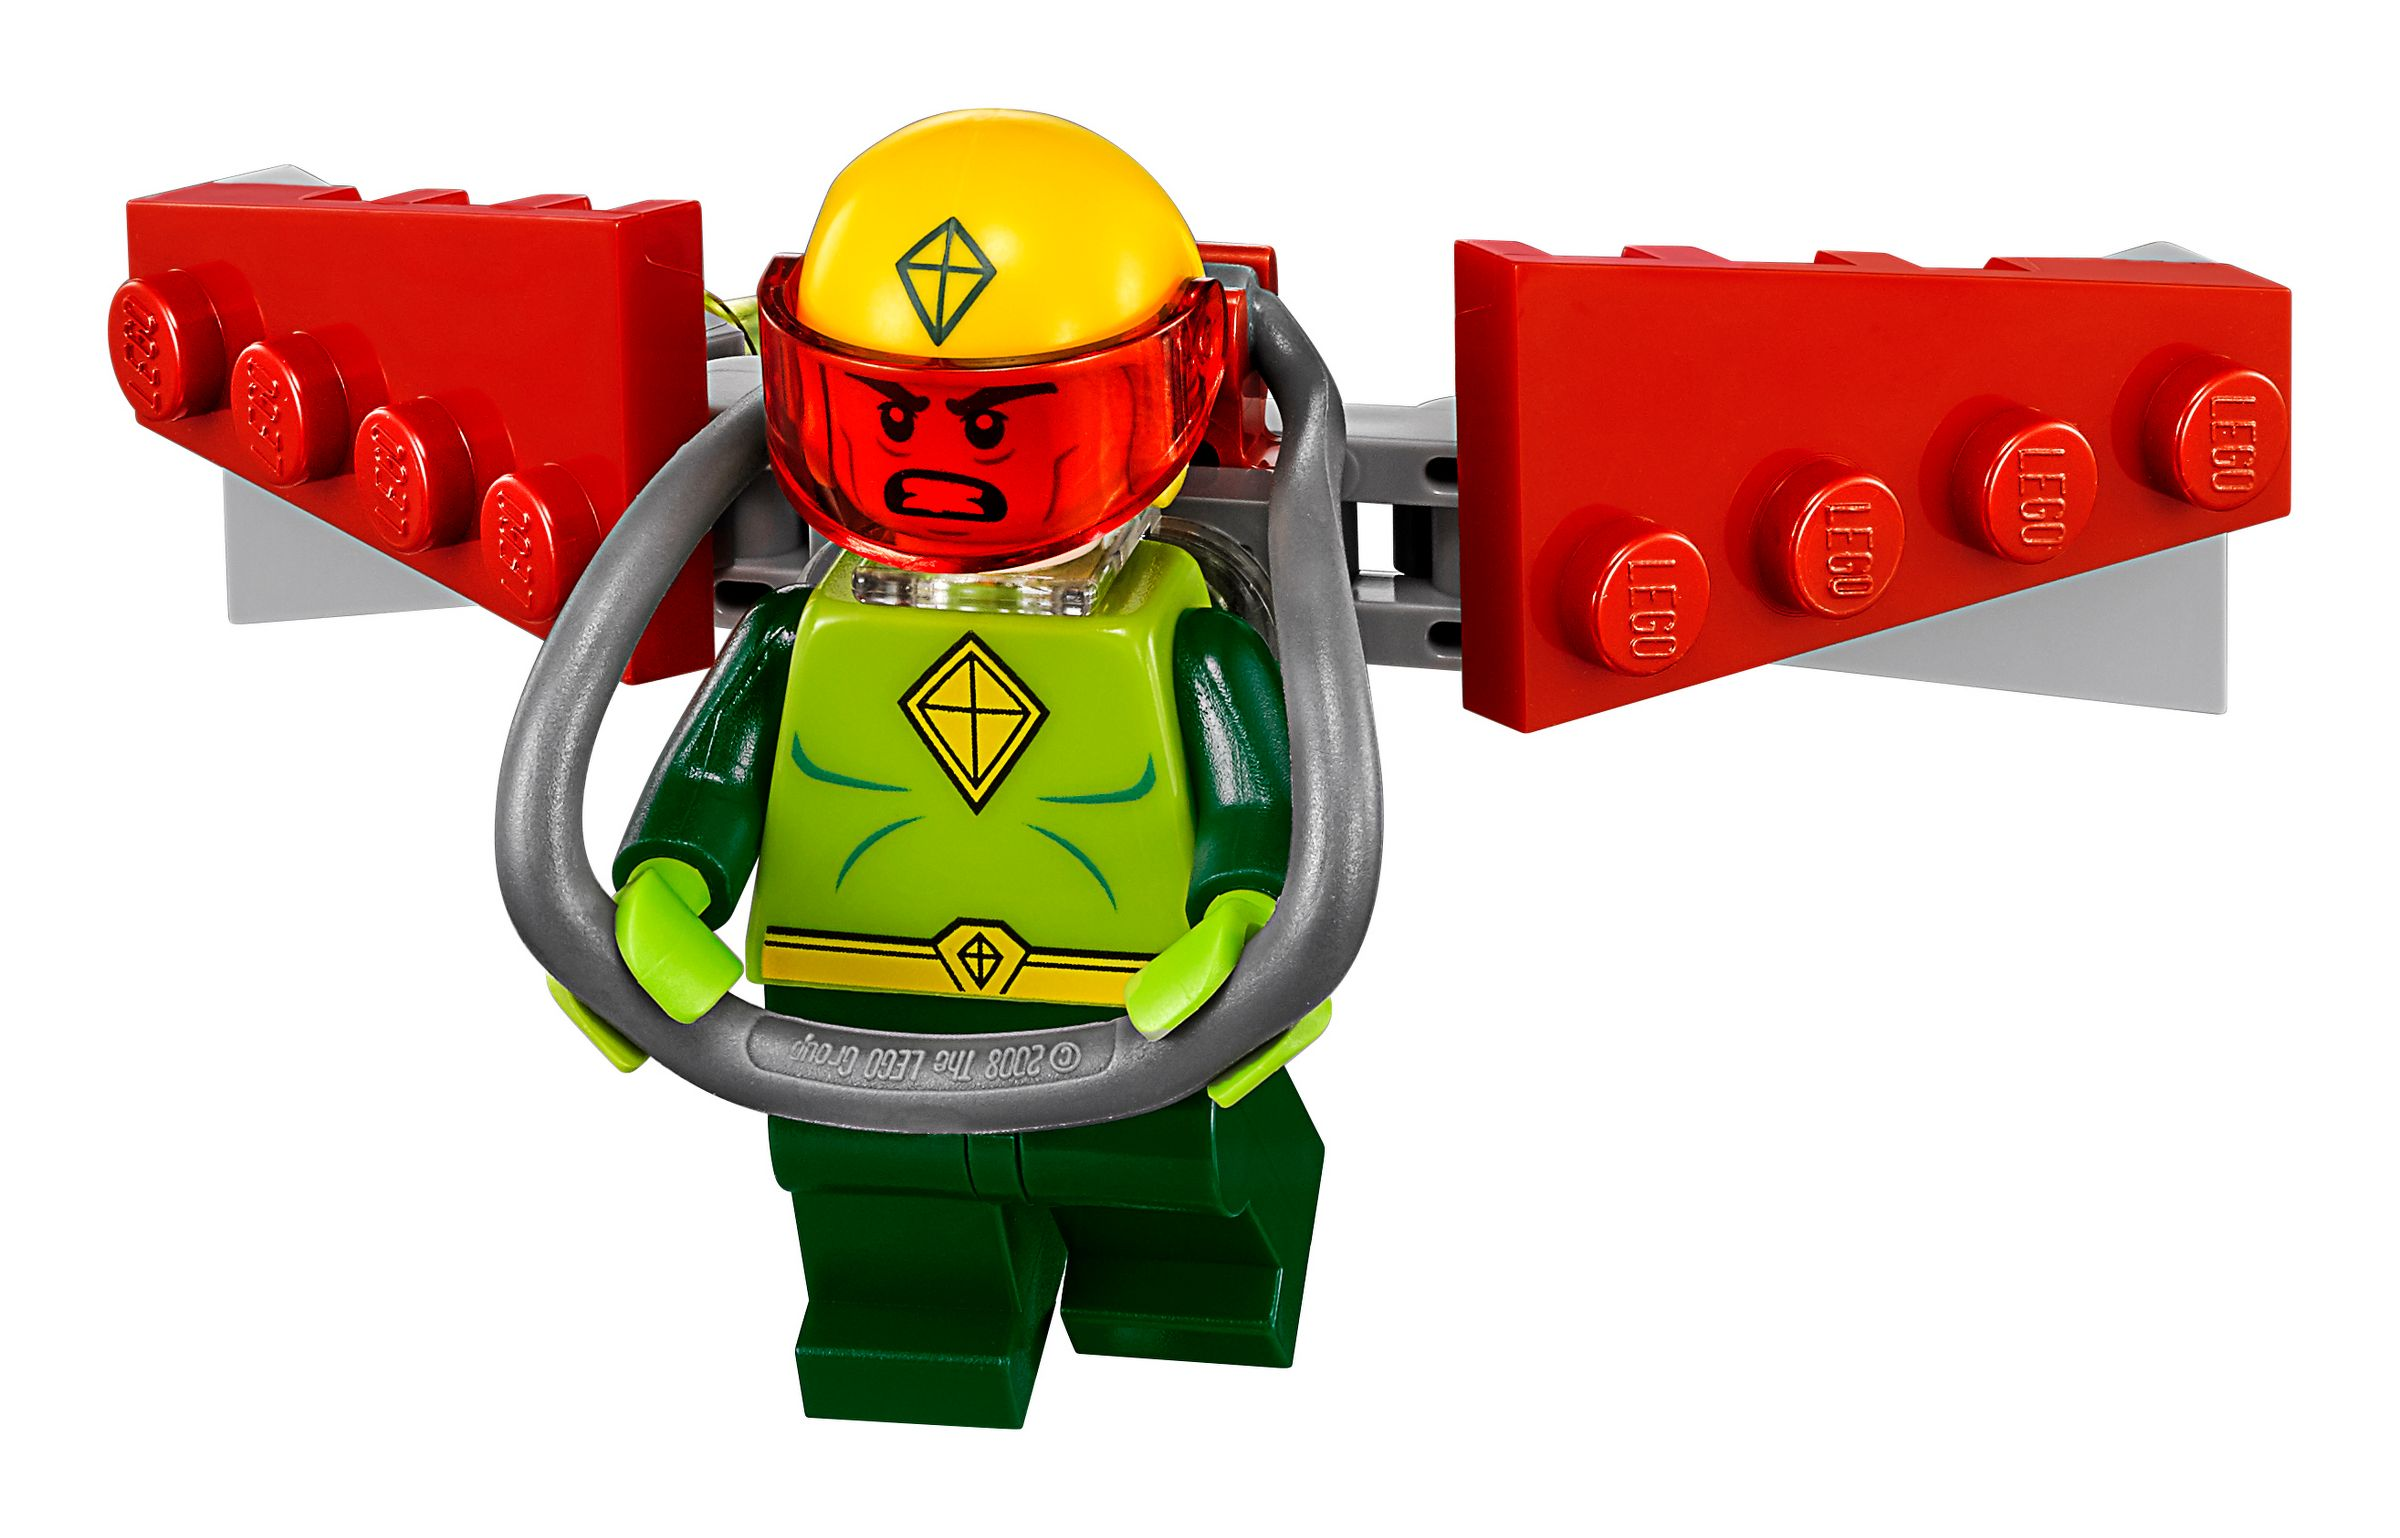 LEGO The LEGO Batman Movie 70903 The Riddler™: Riddle Racer LEGO_70903_alt4.jpg